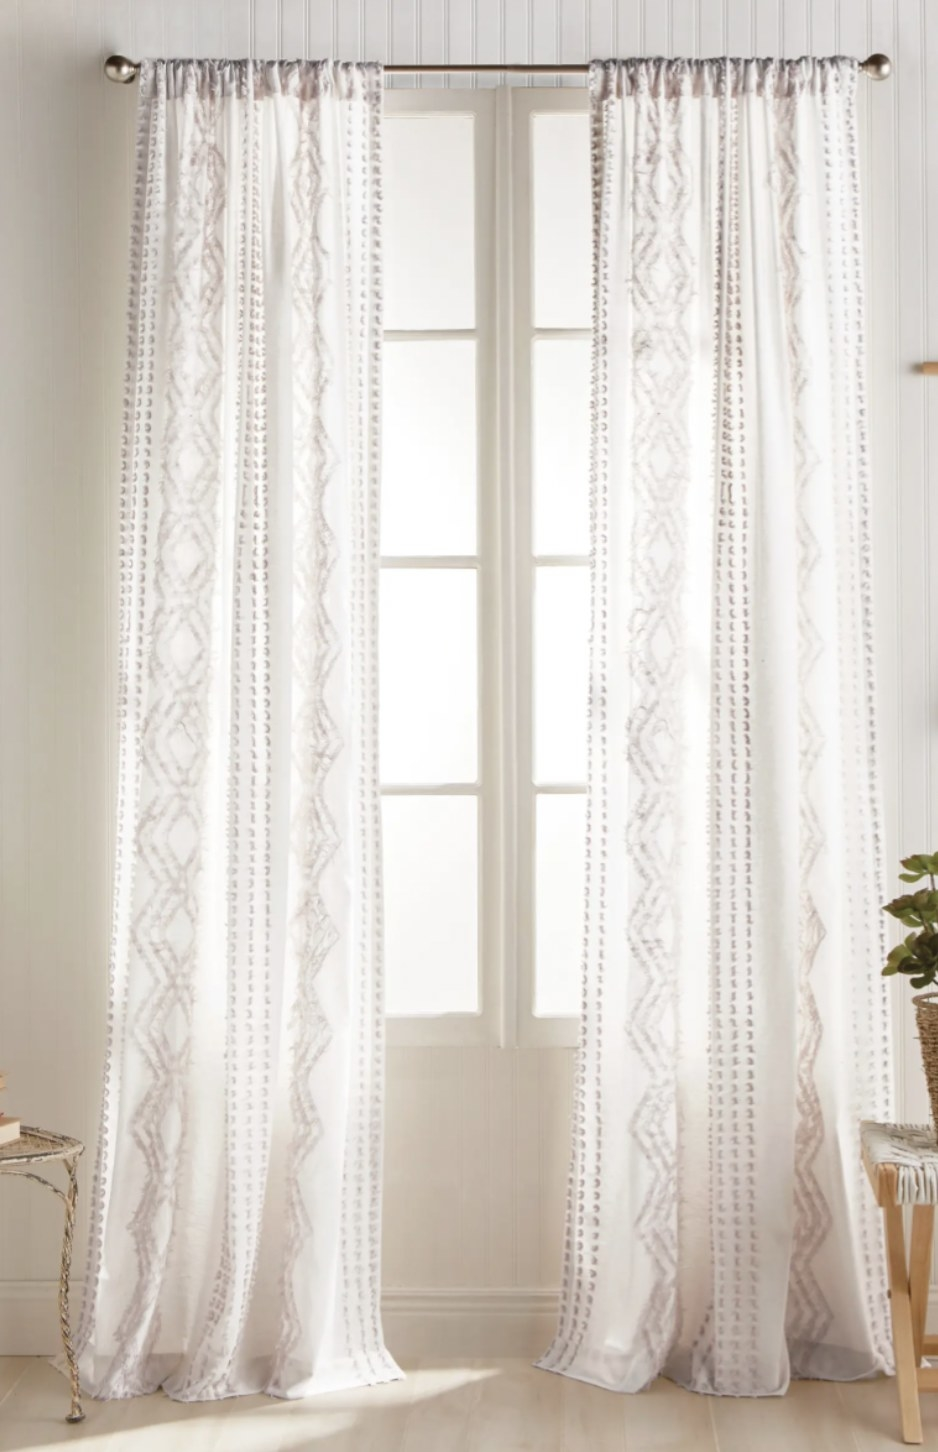 a set of white curtain panels handing in front of a window in a living roon